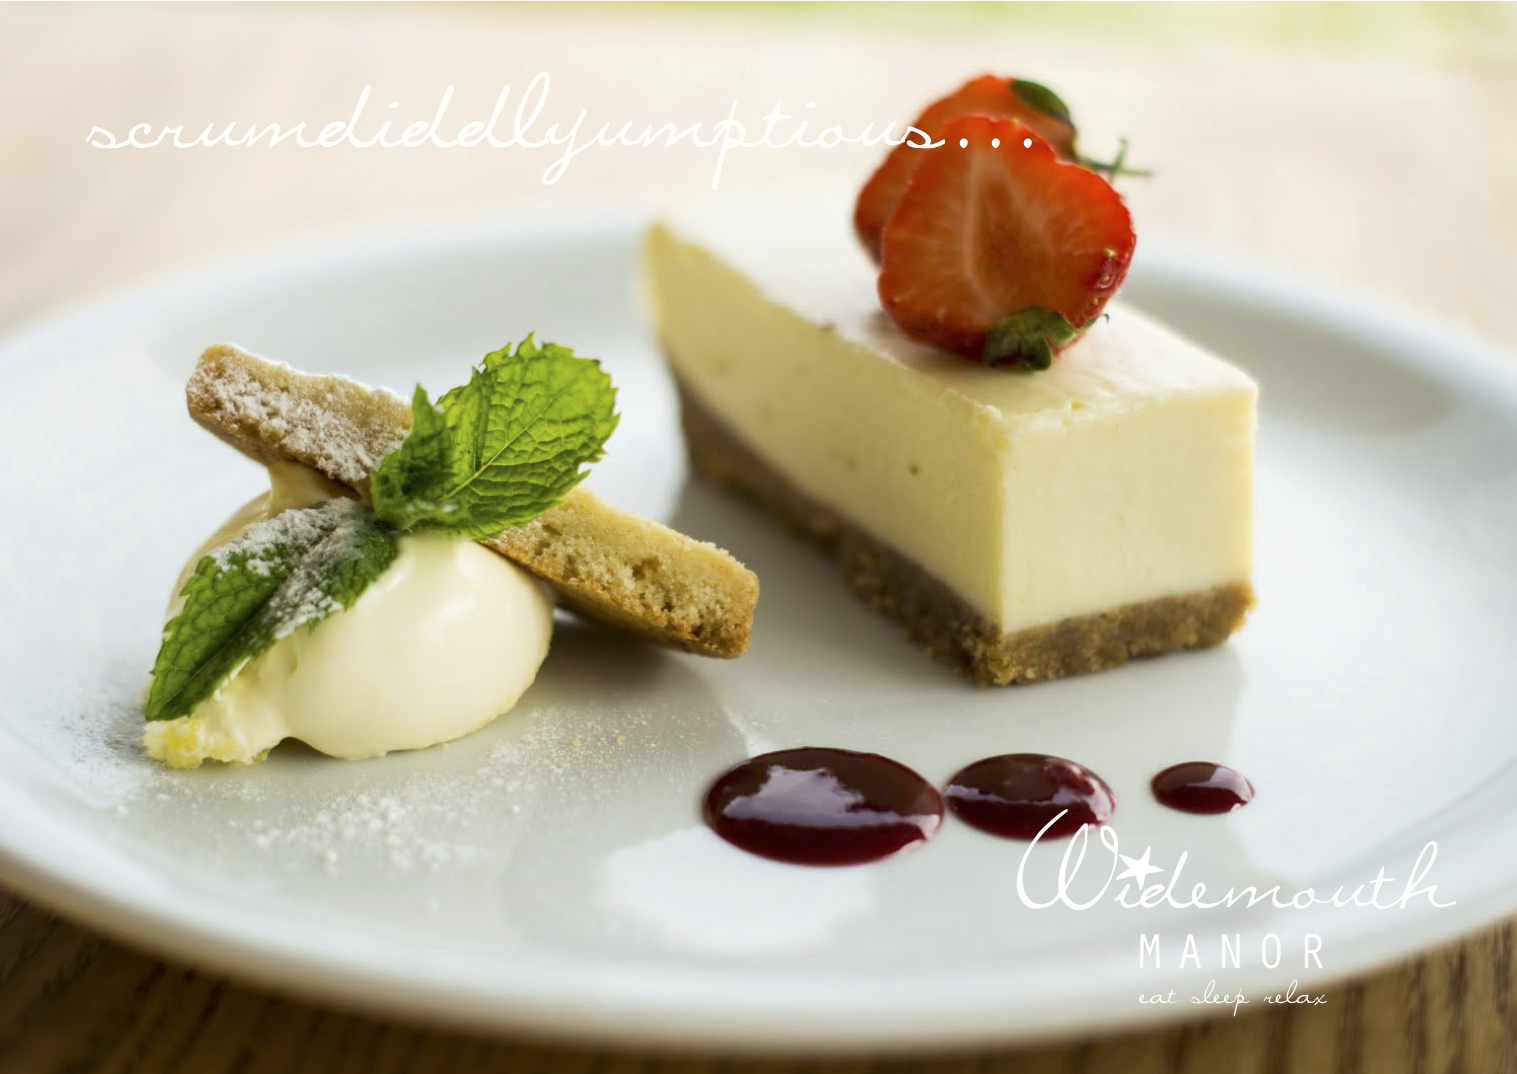 F Widemouth Manor postcard cheesecake .jpg